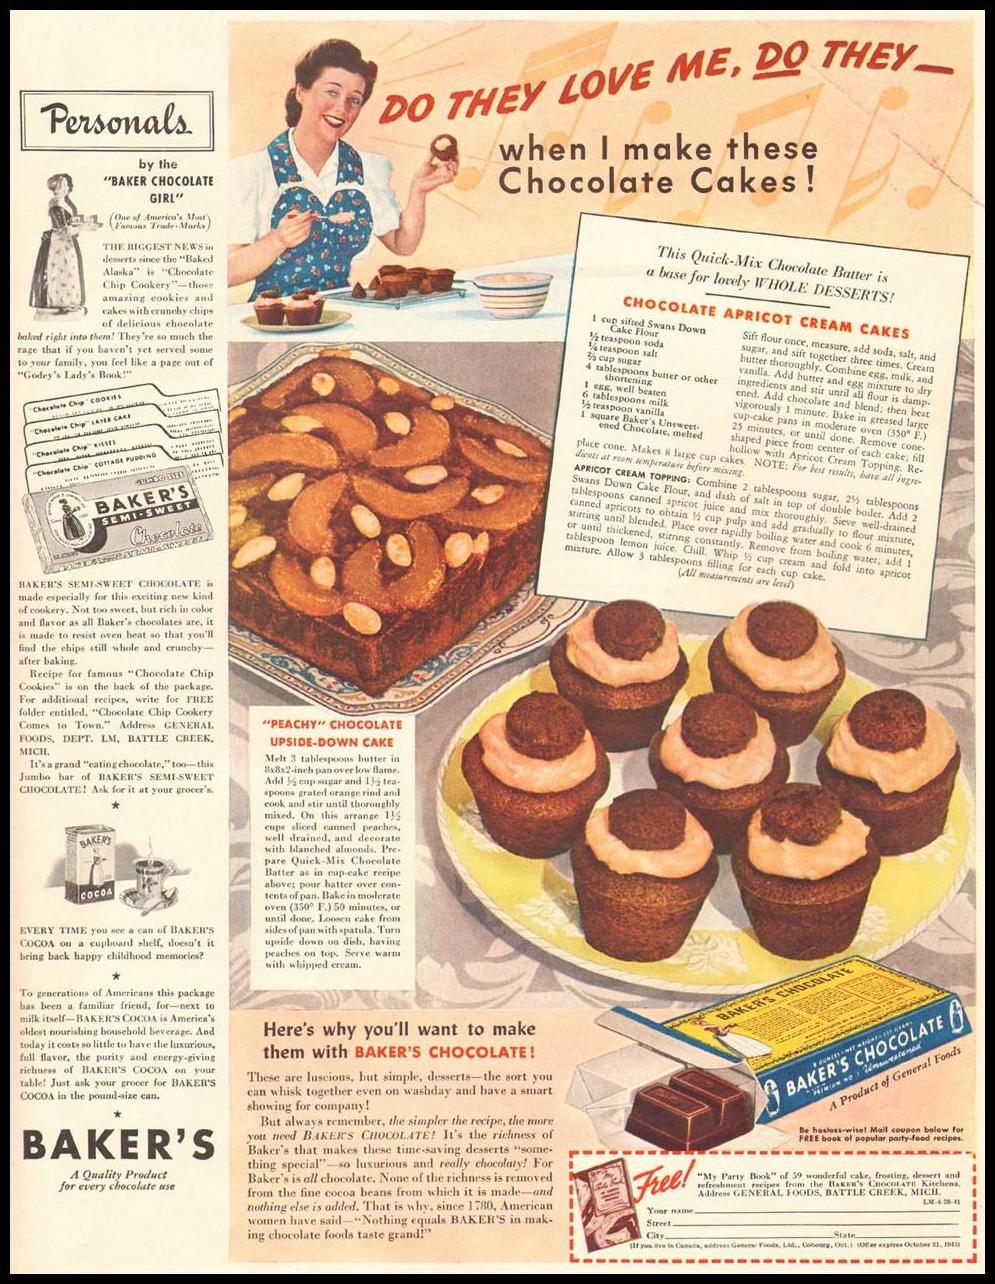 BAKER'S CHOCOLATE LIFE 04/28/1941 INSIDE BACK